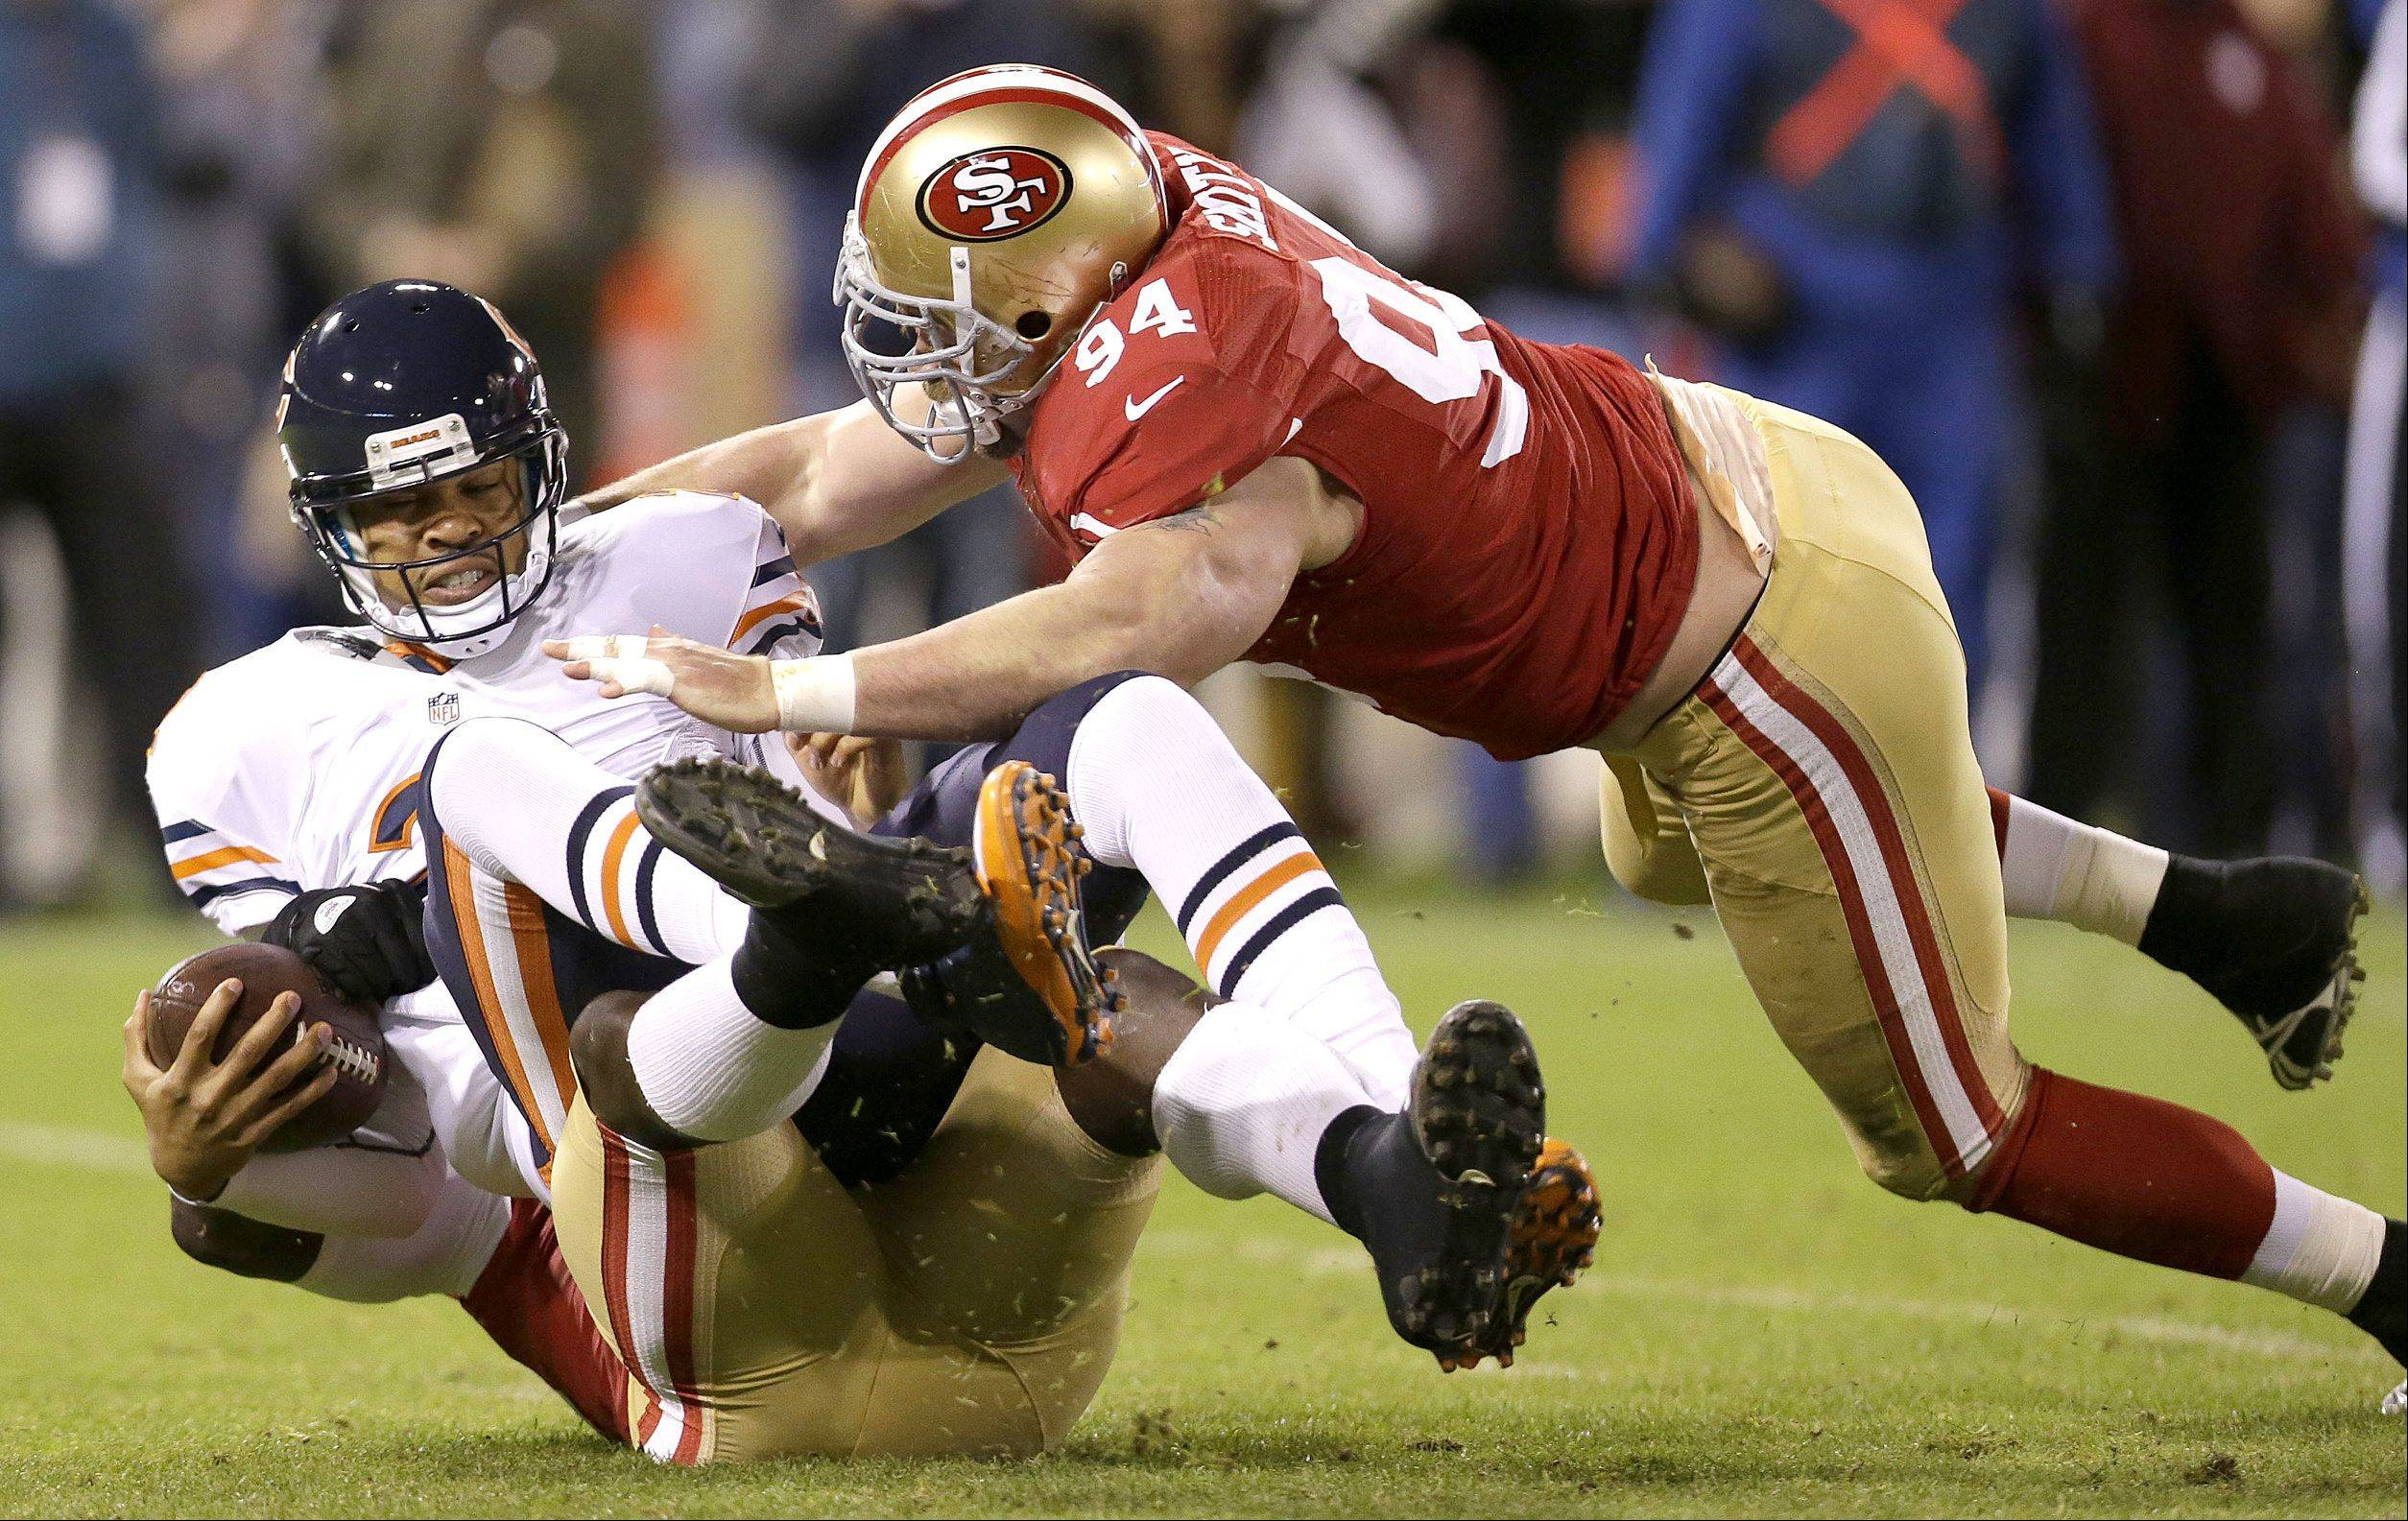 Chicago Bears quarterback Jason Campbell is sacked by San Francisco 49ers linebacker Aldon Smith, bottom, as defensive tackle Justin Smith converges during the first quarter.